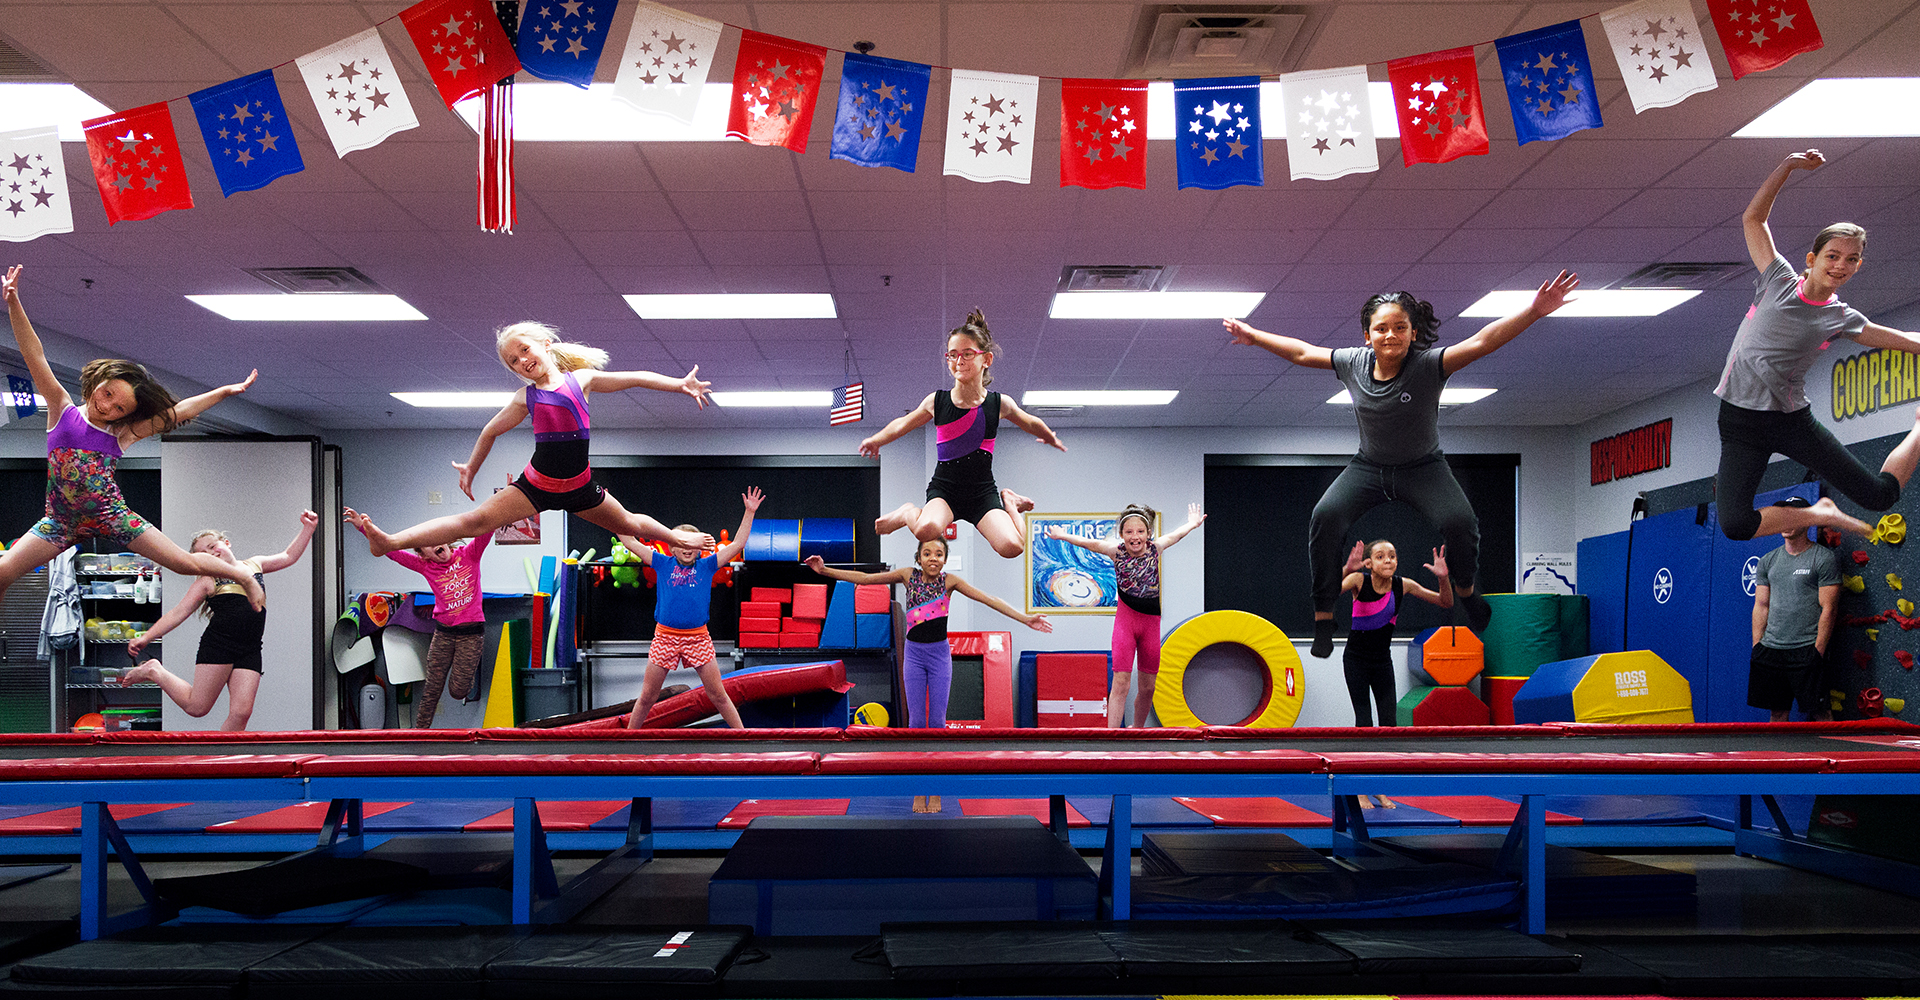 Hero Image: Gymnastics